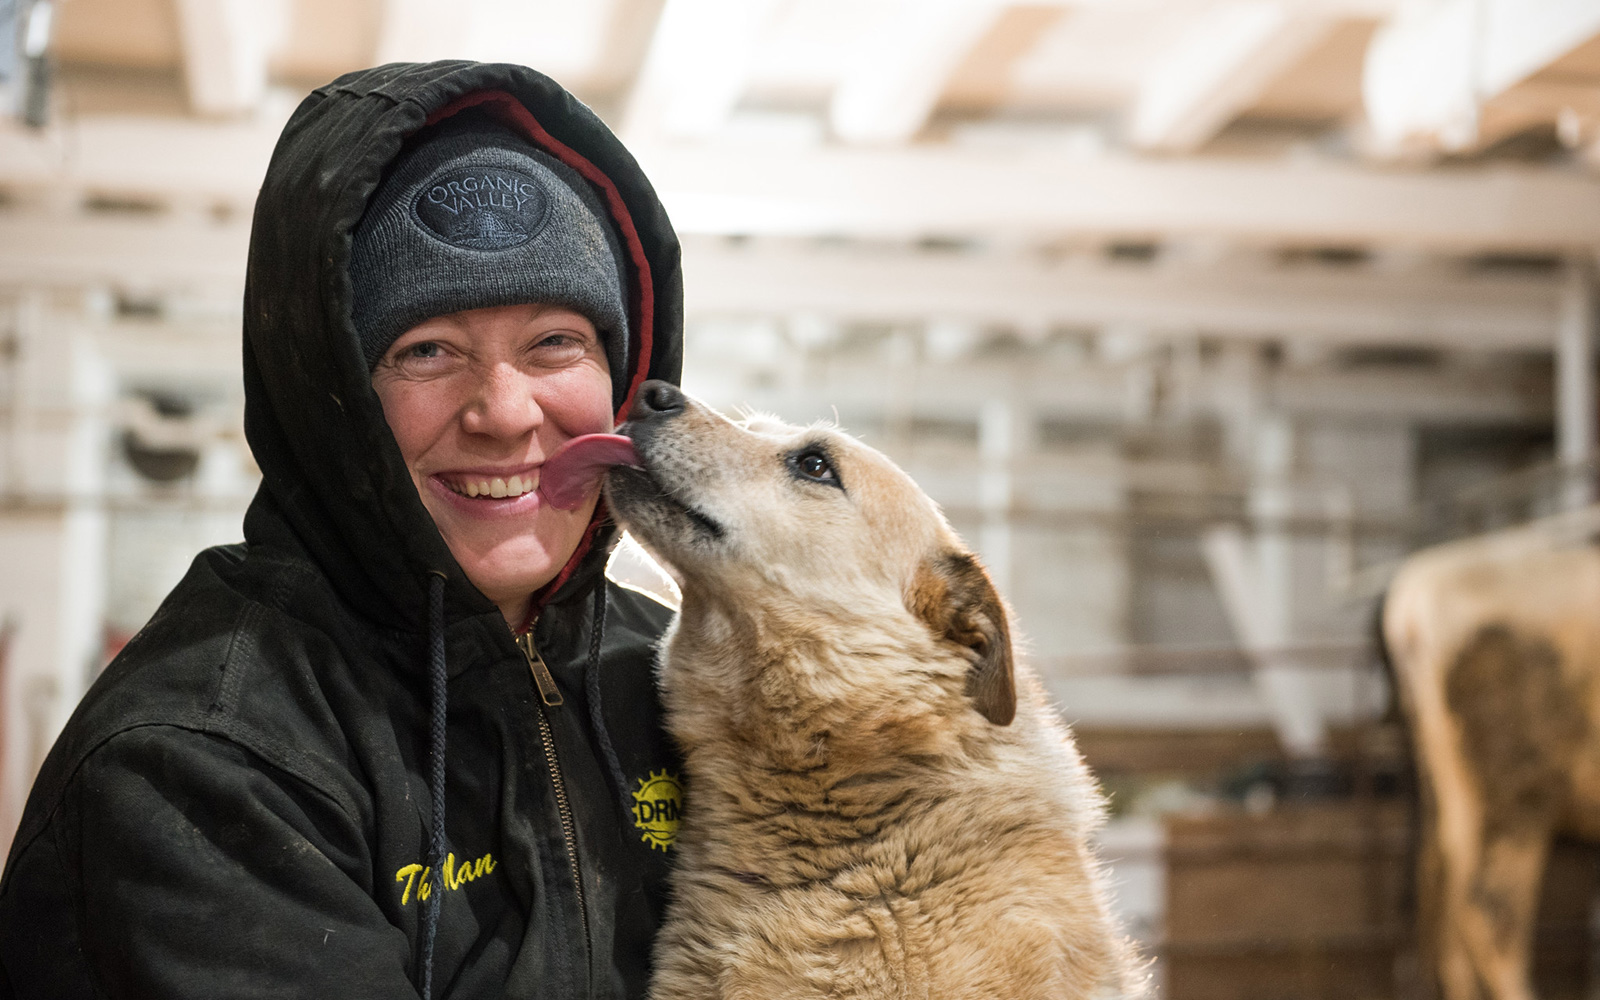 Amy Koenig gets a wet kiss from the Jumpin' Jerseys farm dog.